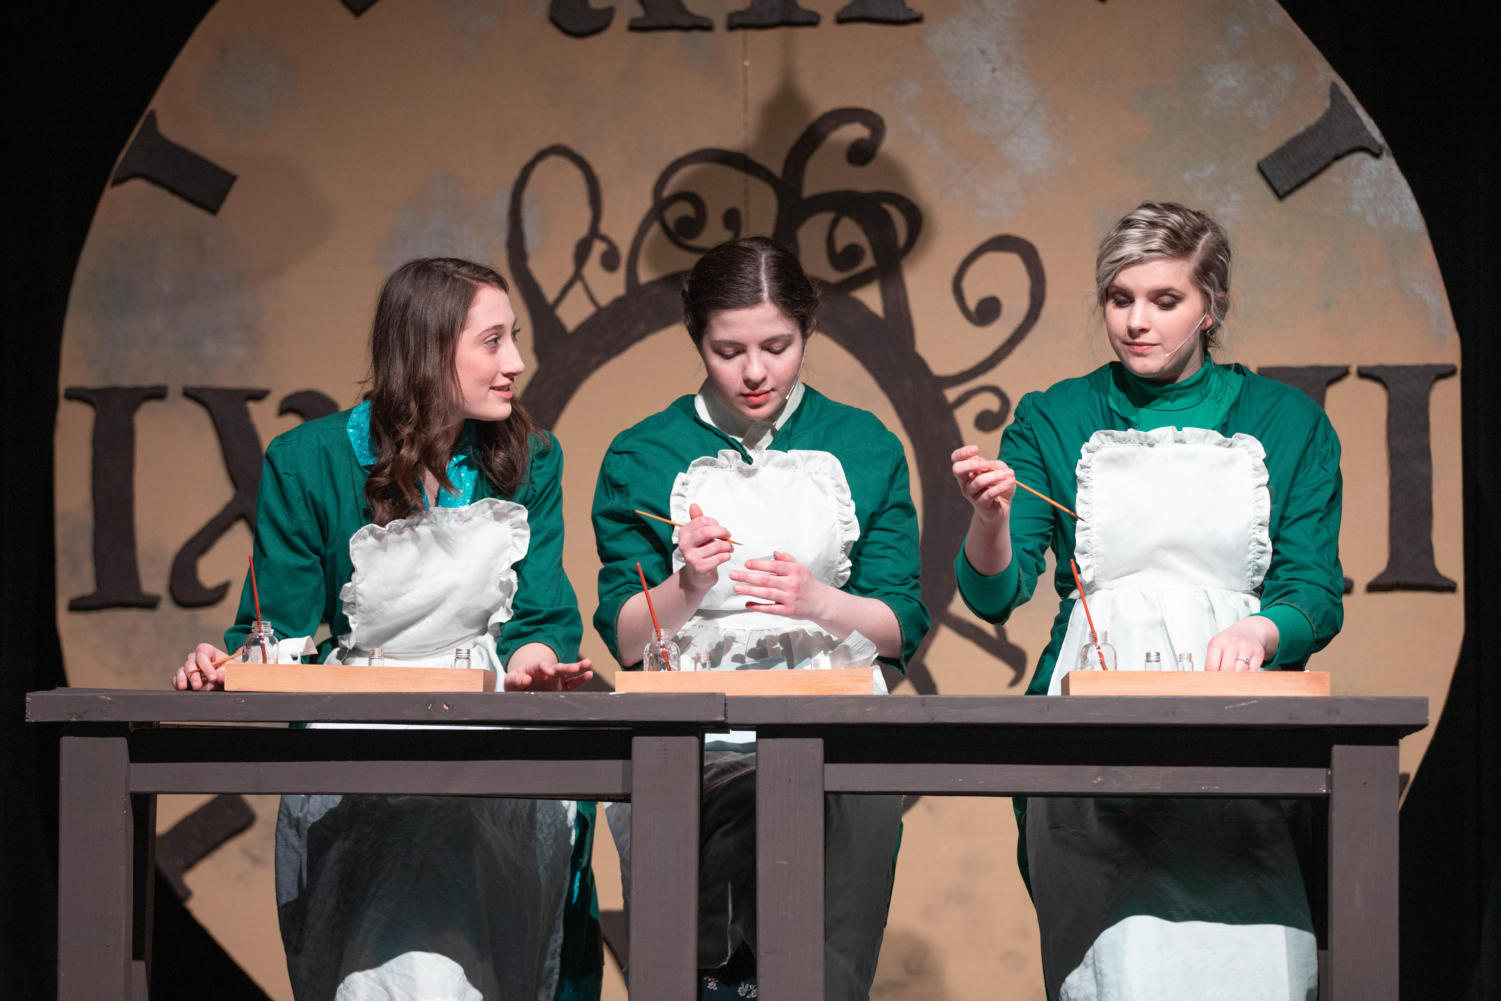 From left to right: Julia Deters, Michelle Yoder, and Emily Gann play women in the 1920's who painted dials for a radium company.